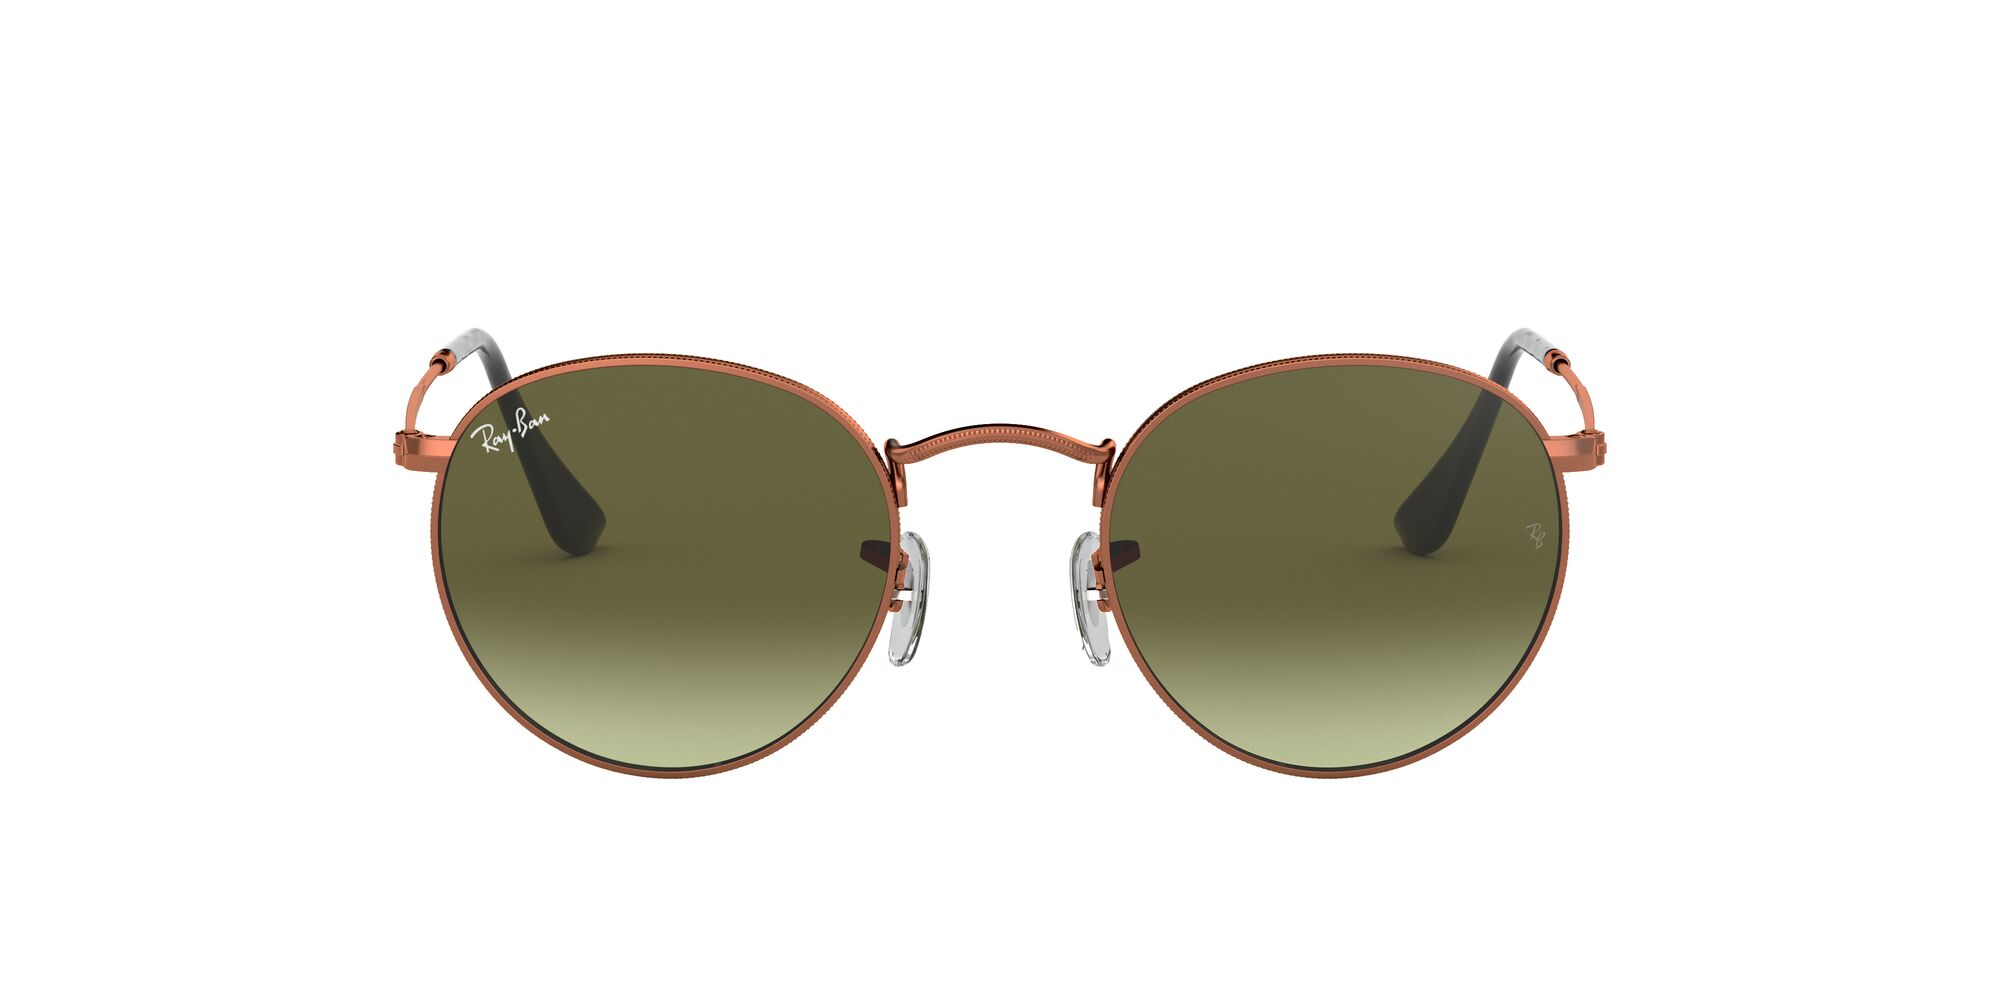 Front Ray-Ban Ray-Ban 0RB3447 9002A6 47/21 Brons/Groen